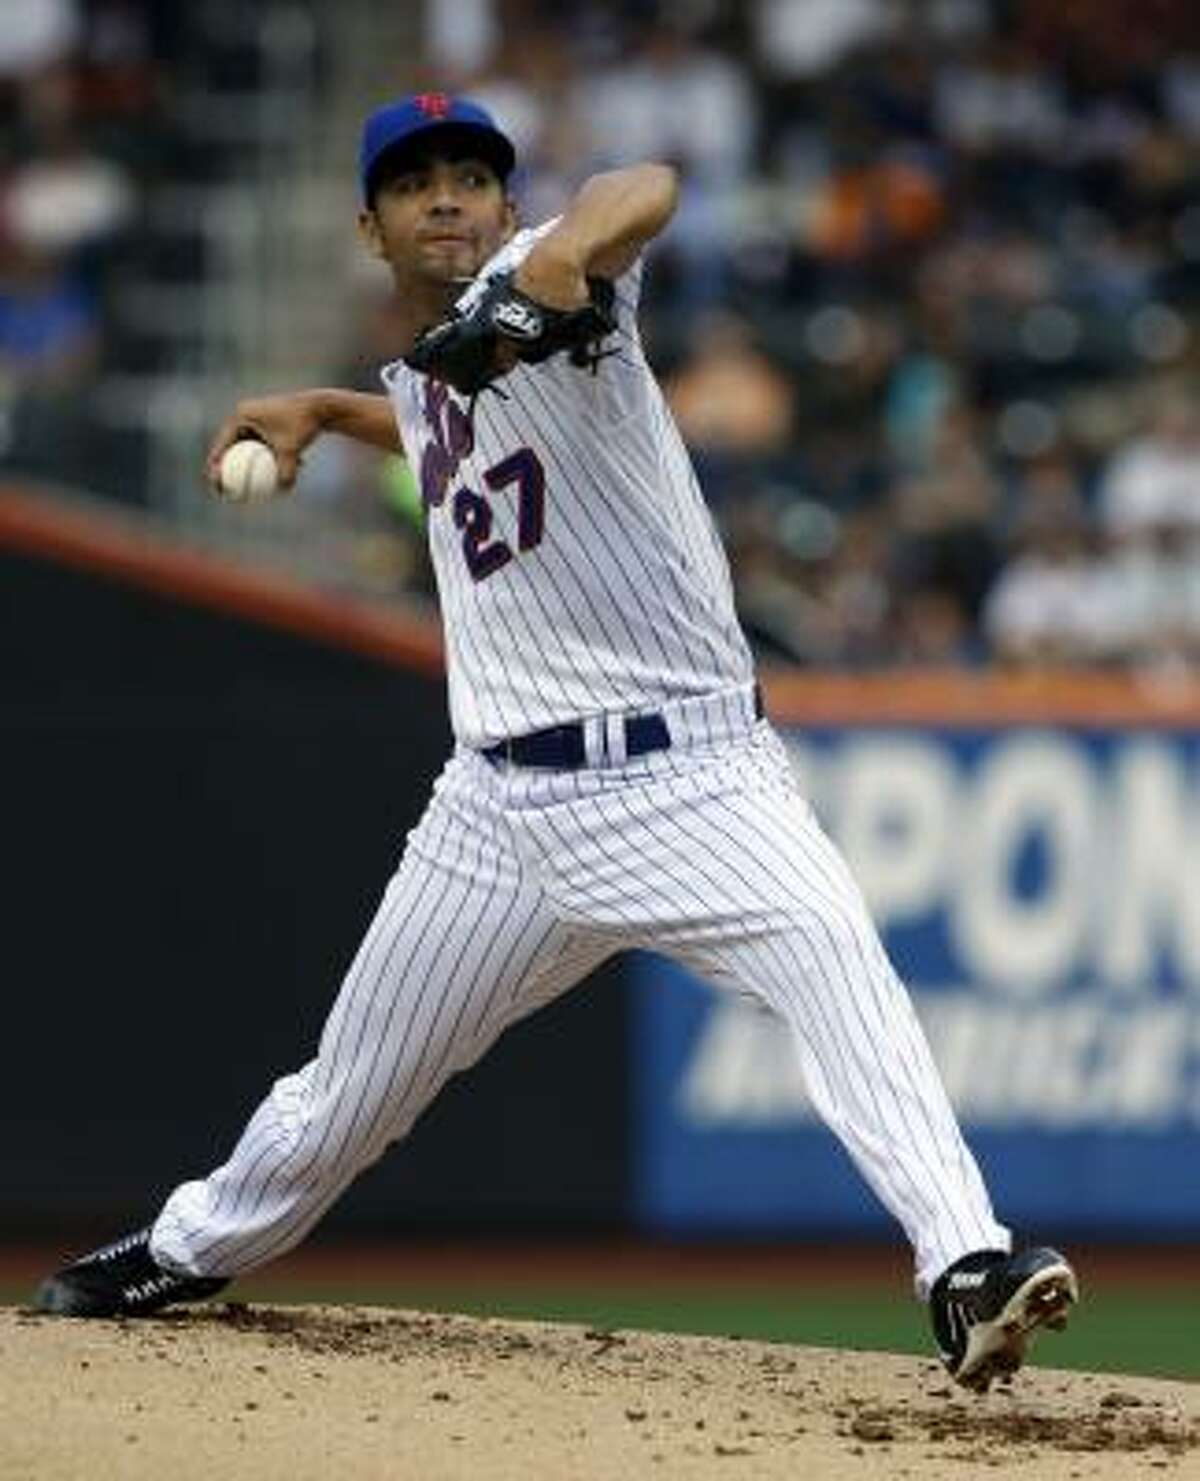 Nelson Figueroa went nine innings for the Mets, striking out seven and allowing zero runs.